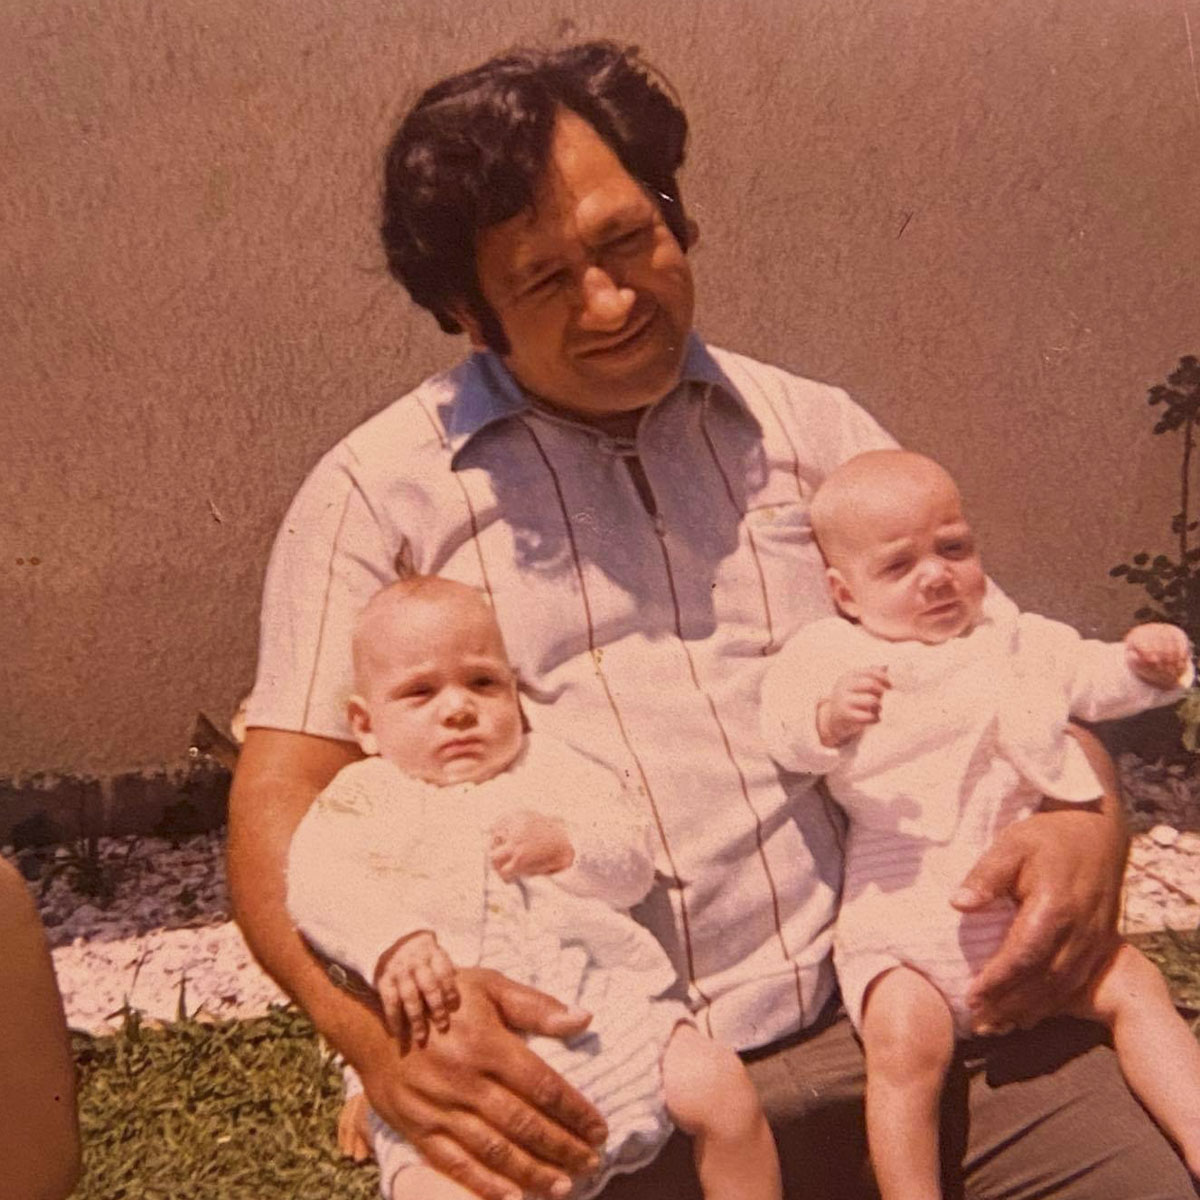 Reginald Borell with his twins Nigel (left) and Belinda (right) aged 18months. Otāhuhu 1974.